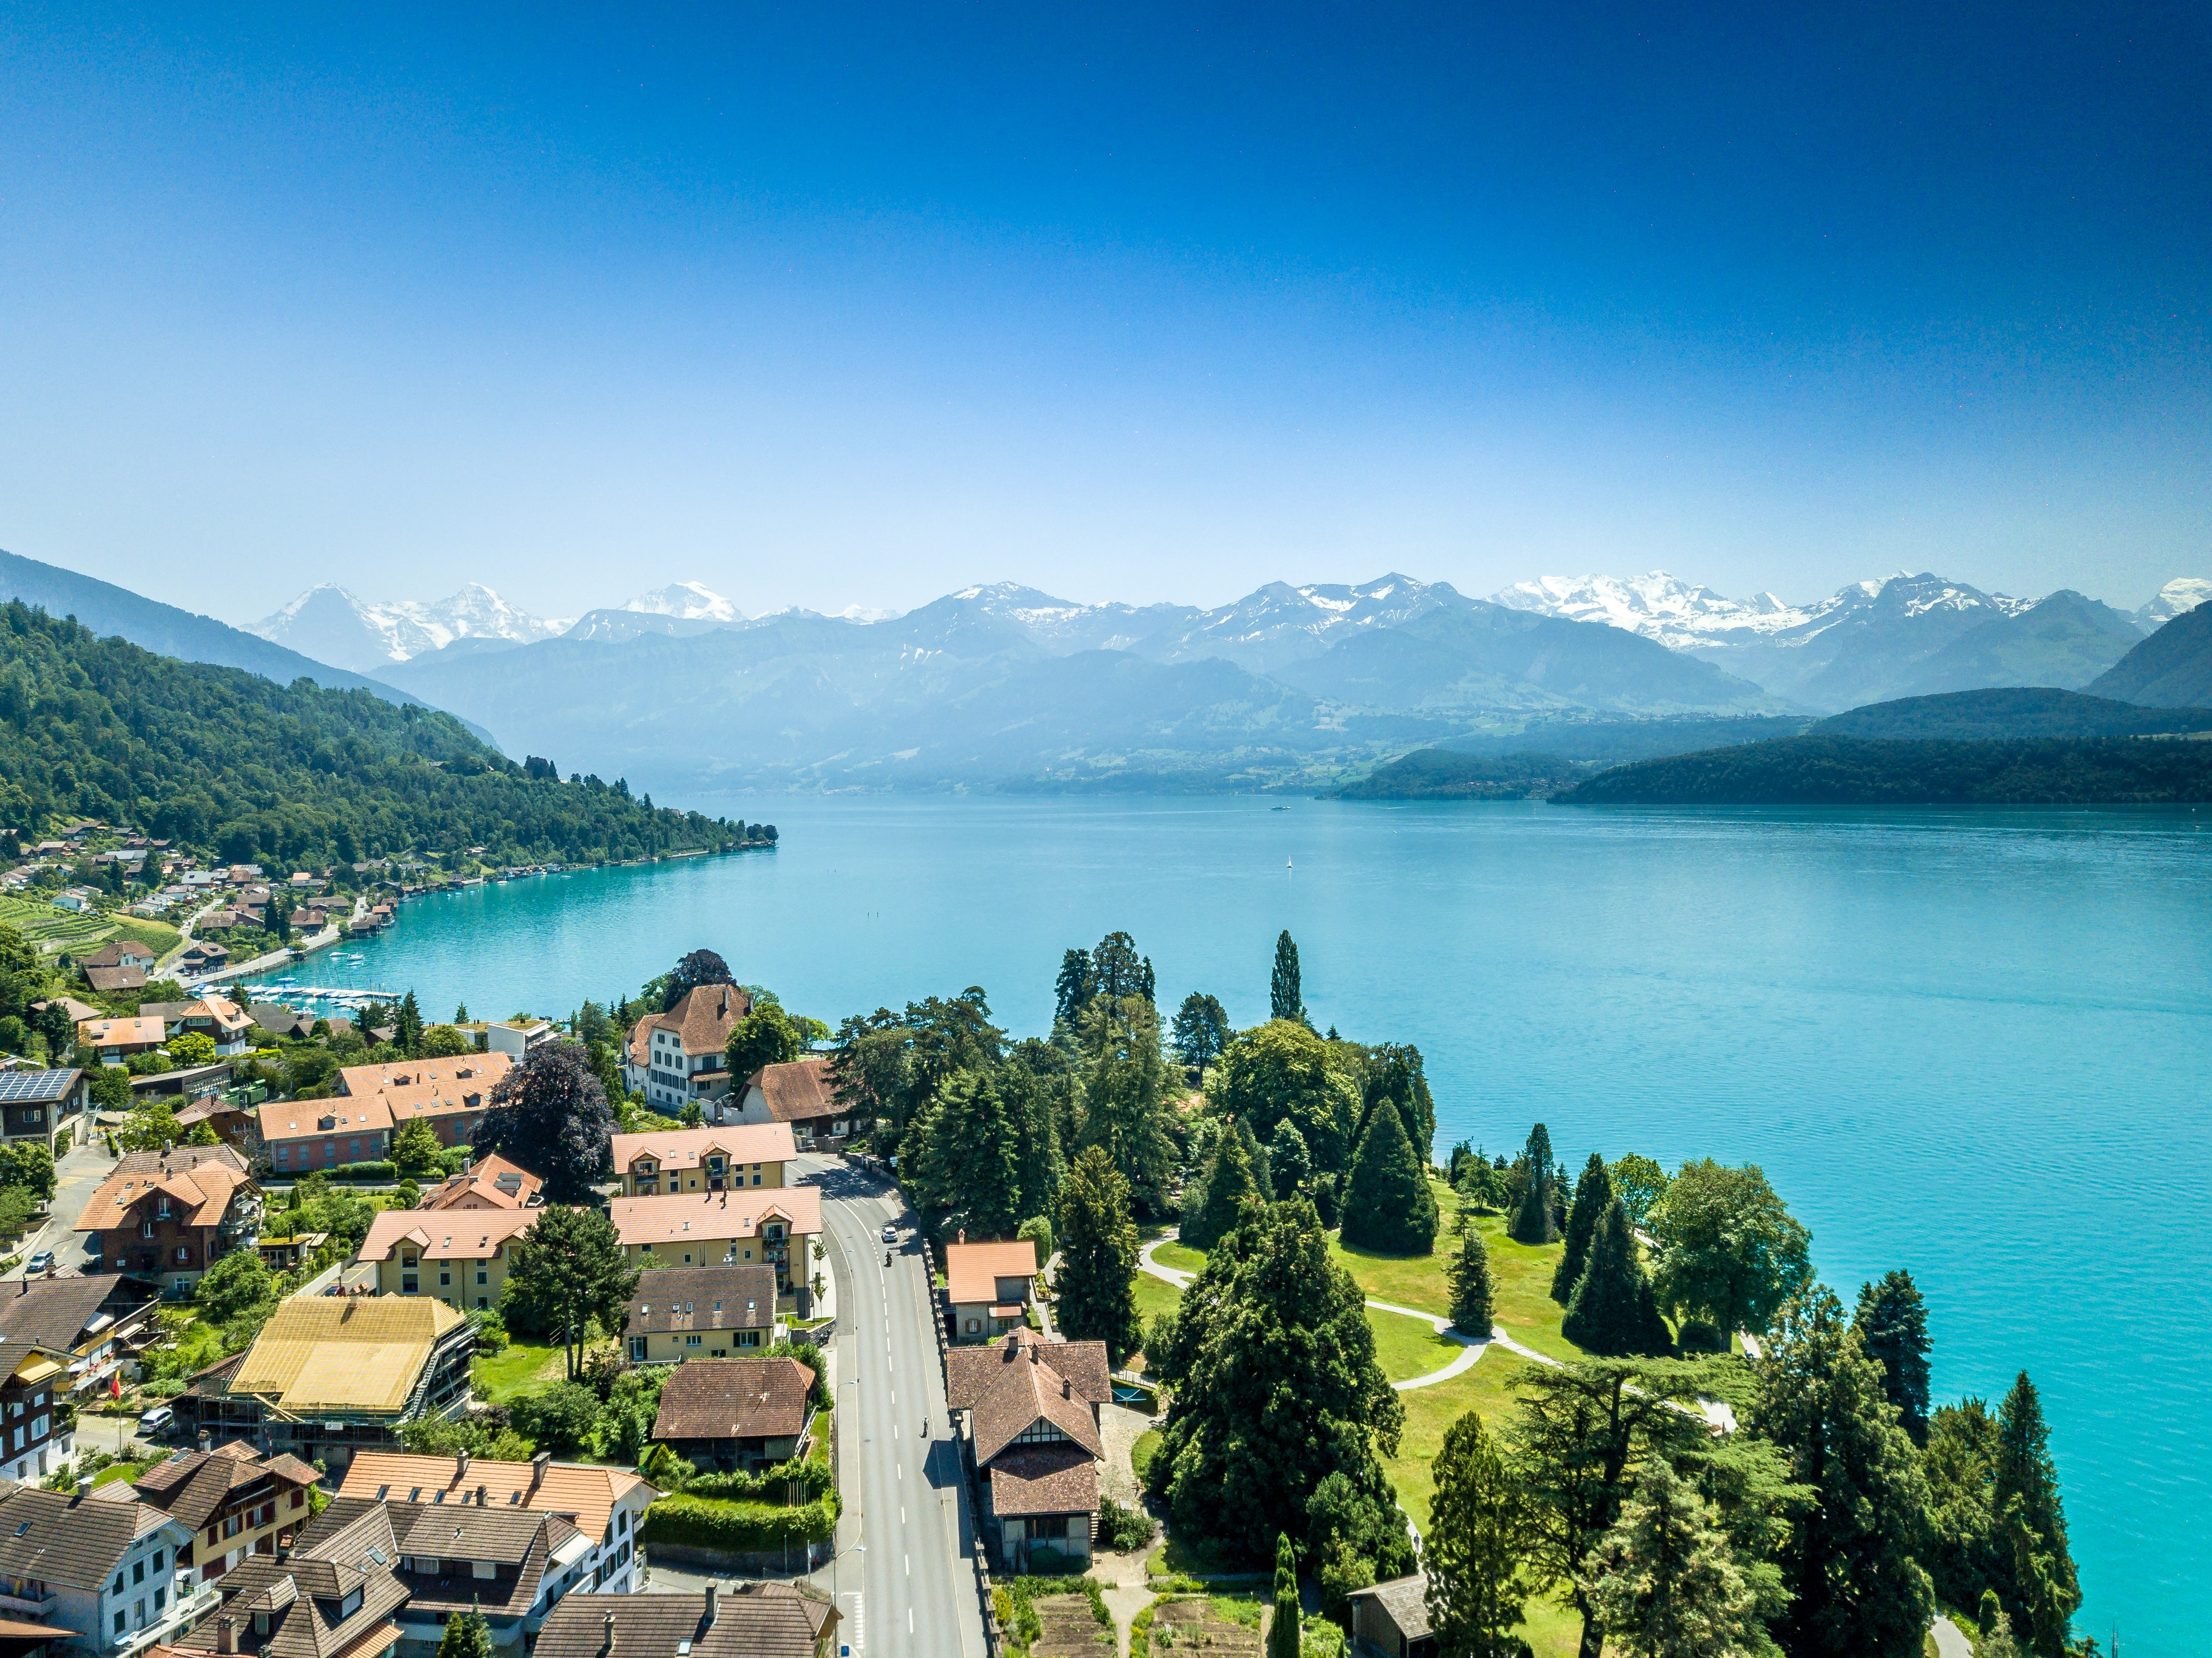 swiss town by the lake; pre-employment assessment